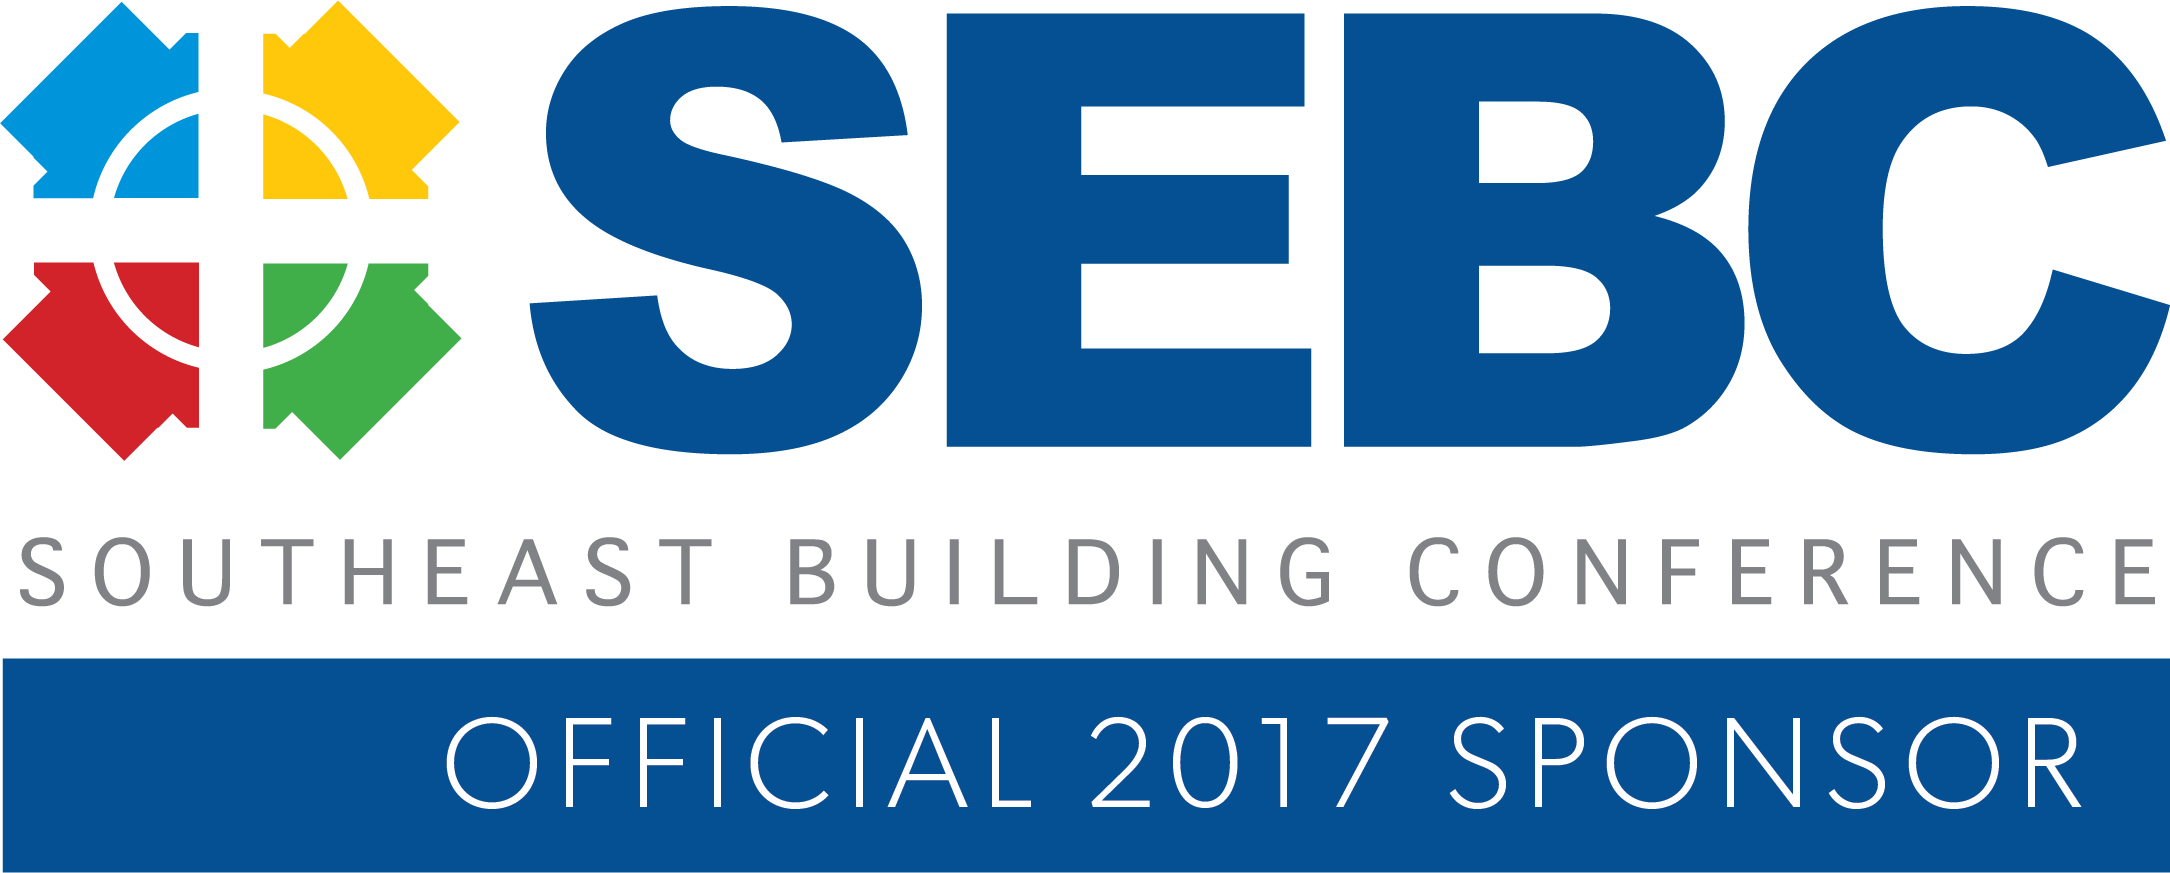 Southeast Building Conference